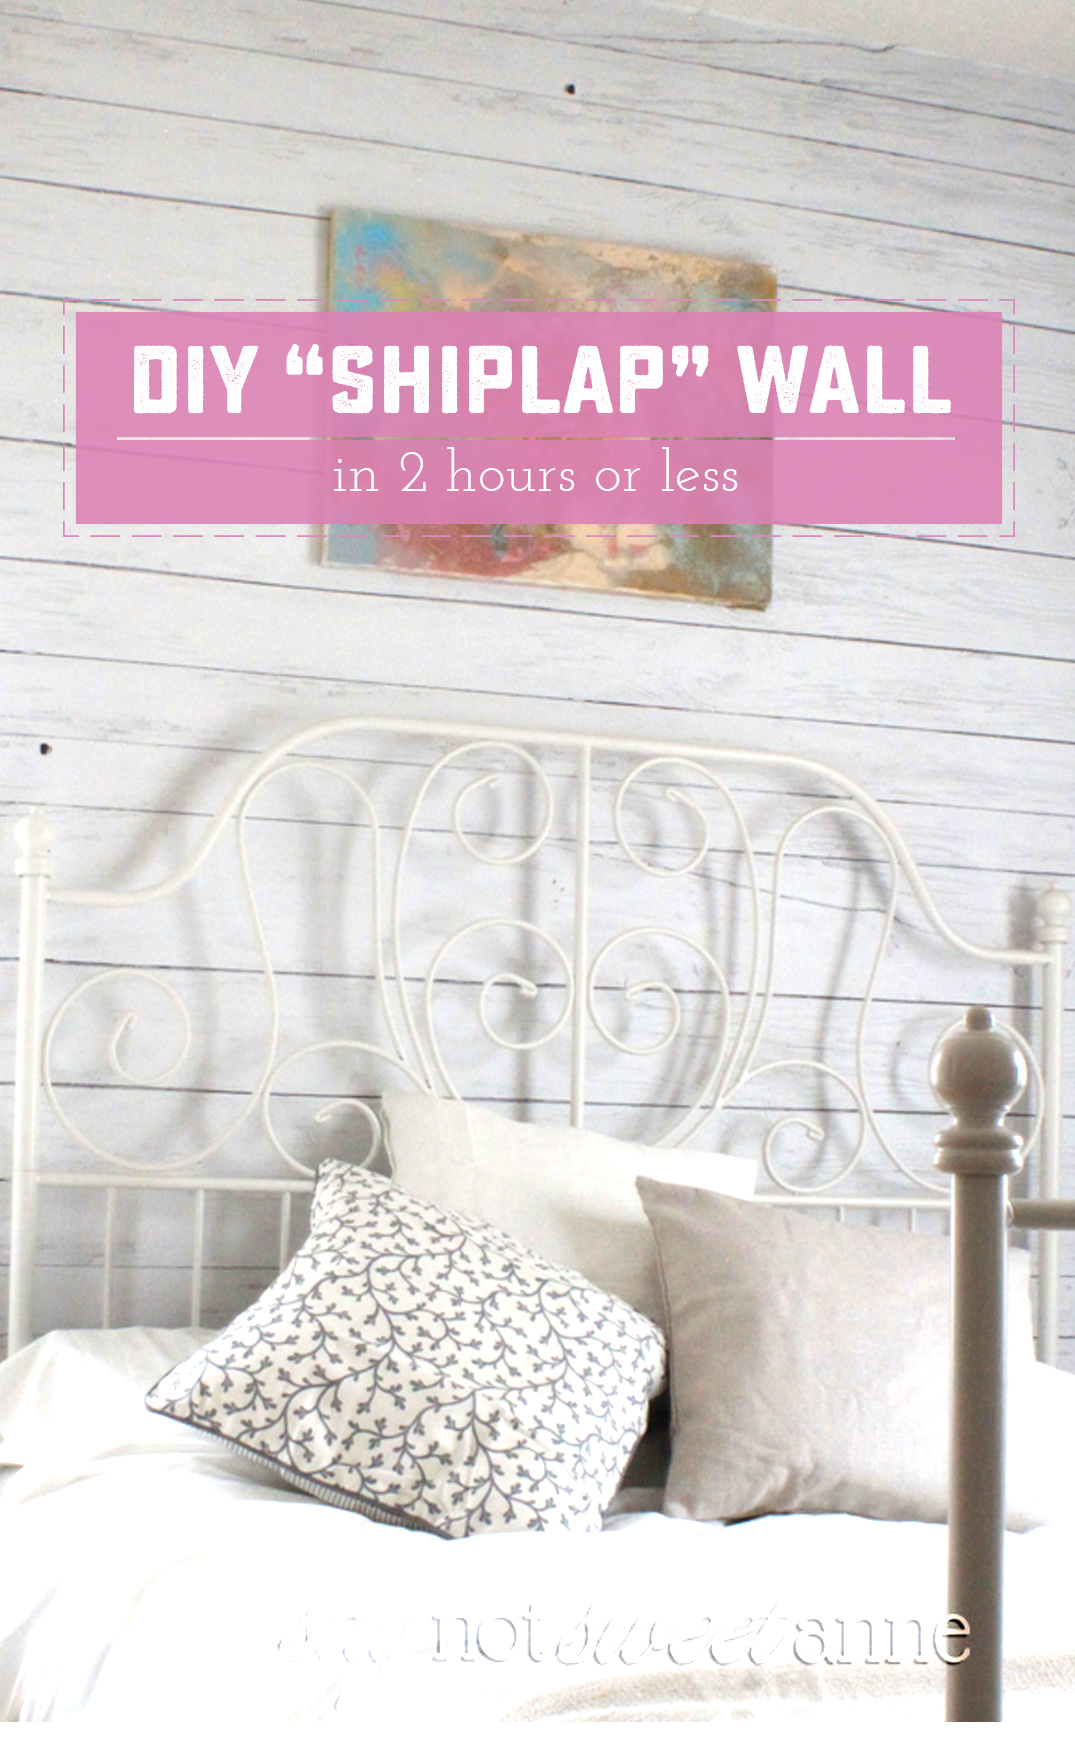 DIY Shiplap Wall. A fast, temporary way to add a beautiful shiplap look to your wall! | saynotsweetanne.com